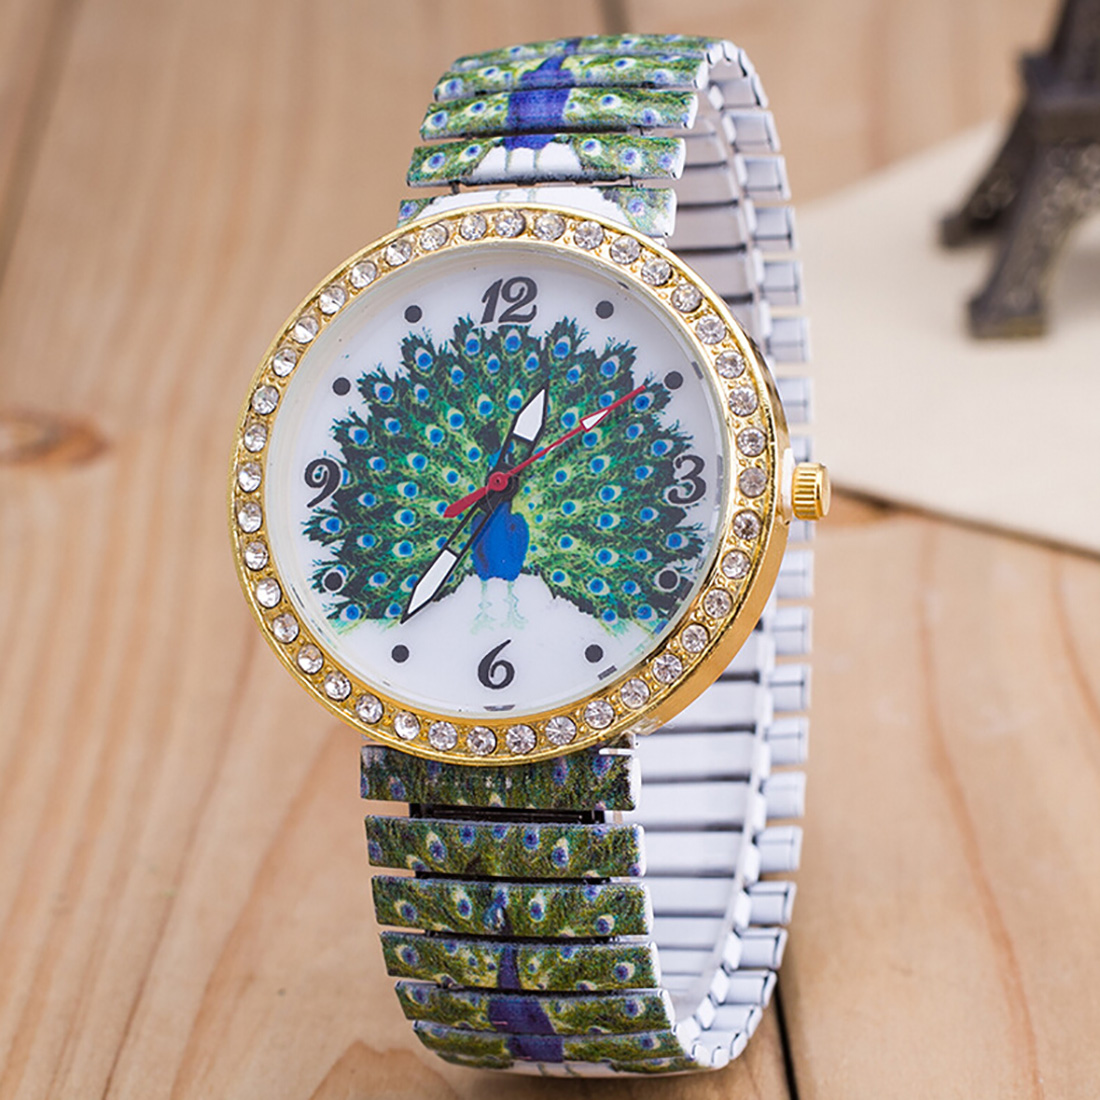 купить Elastic Band Stainless Steel Wristwatches Print Skull Peacock Owl Pattern Fashion Casual Watch Women Watch по цене 271.16 рублей